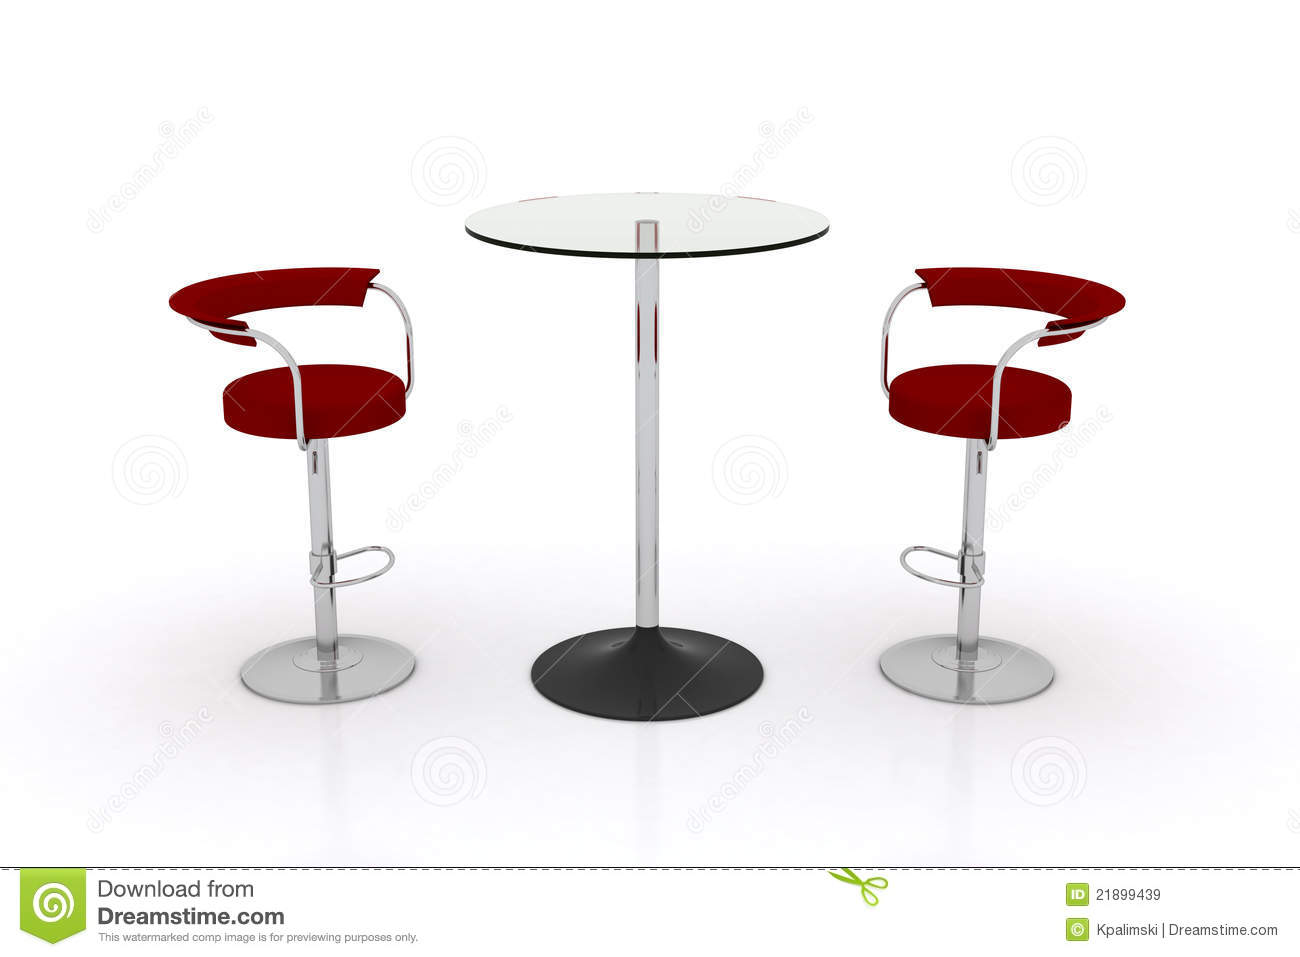 High Glass Top Table W Chairs Royalty Free Stock Images  : high glass top table w chairs 21899439 from www.dreamstime.com size 1300 x 957 jpeg 54kB